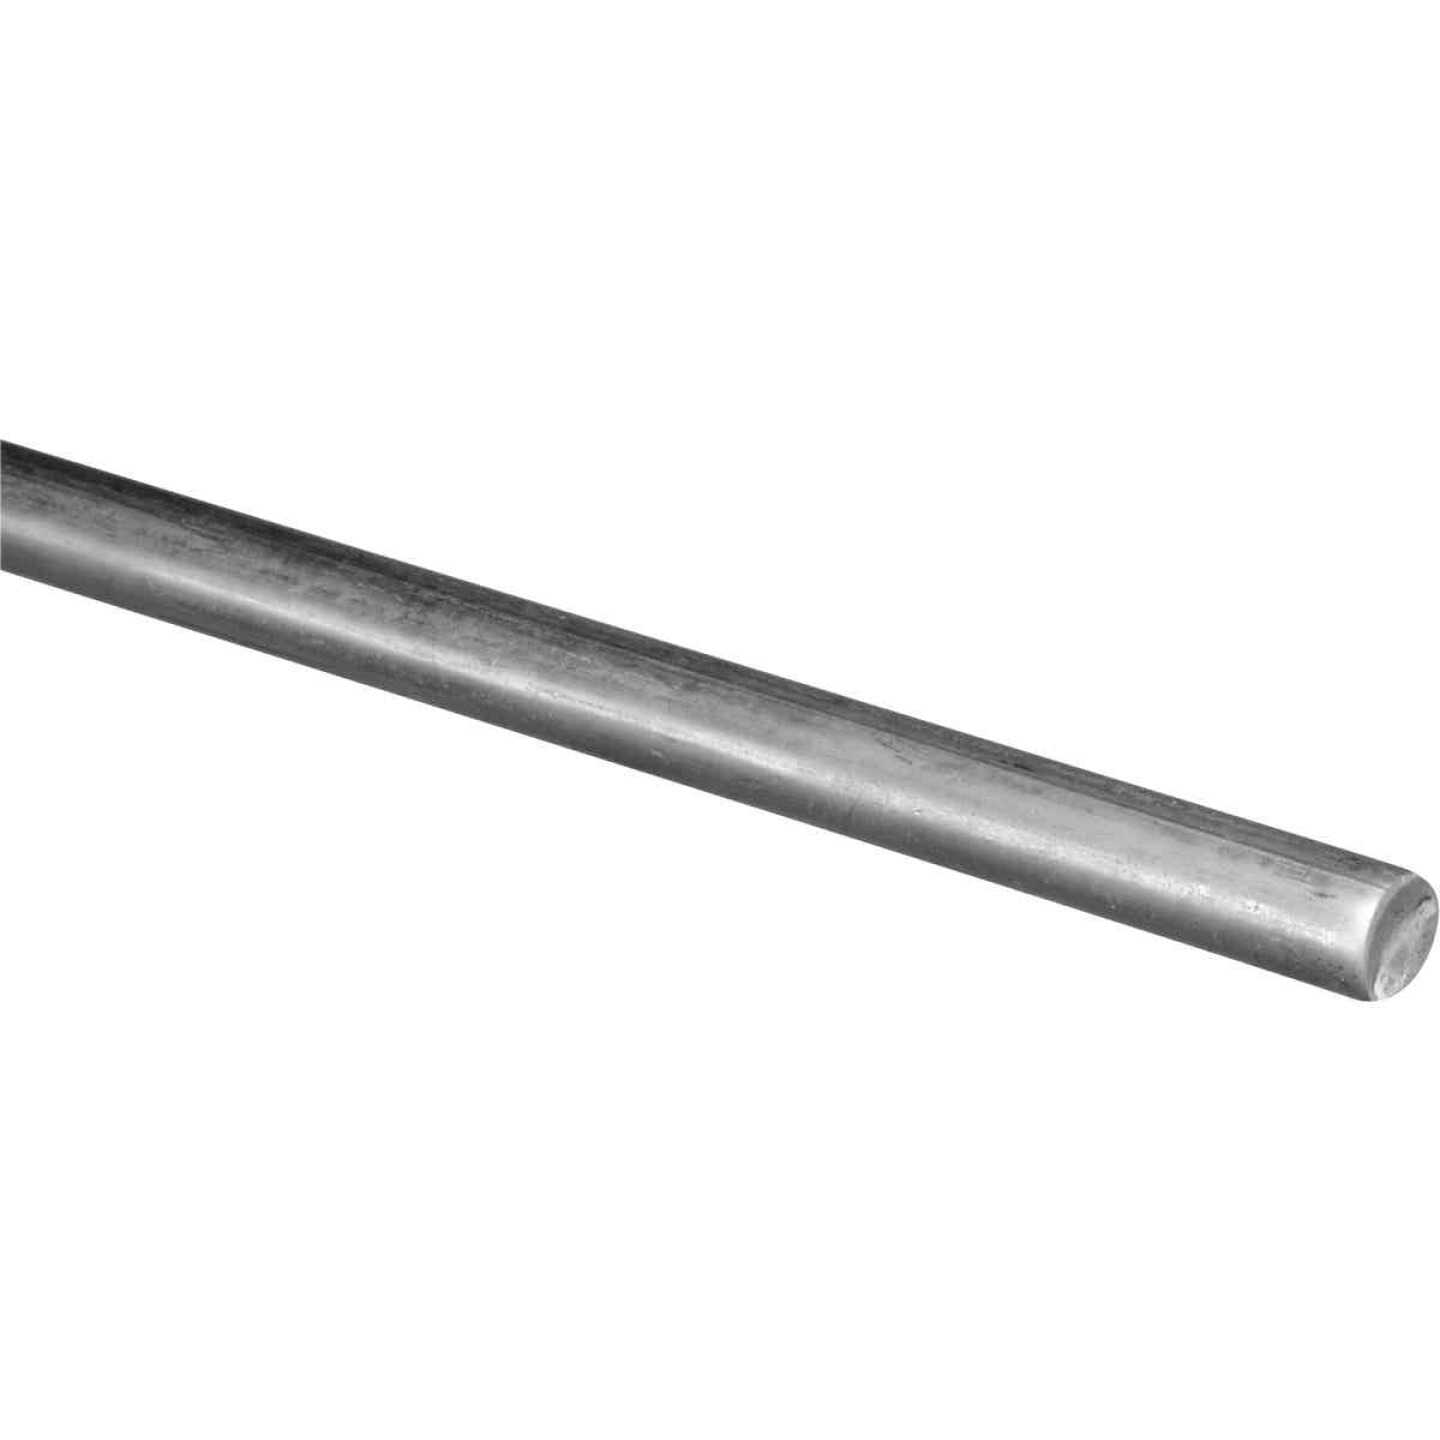 Hillman Steelworks Zinc-Plated 7/16 In. X 3 Ft. Solid Rod Image 1